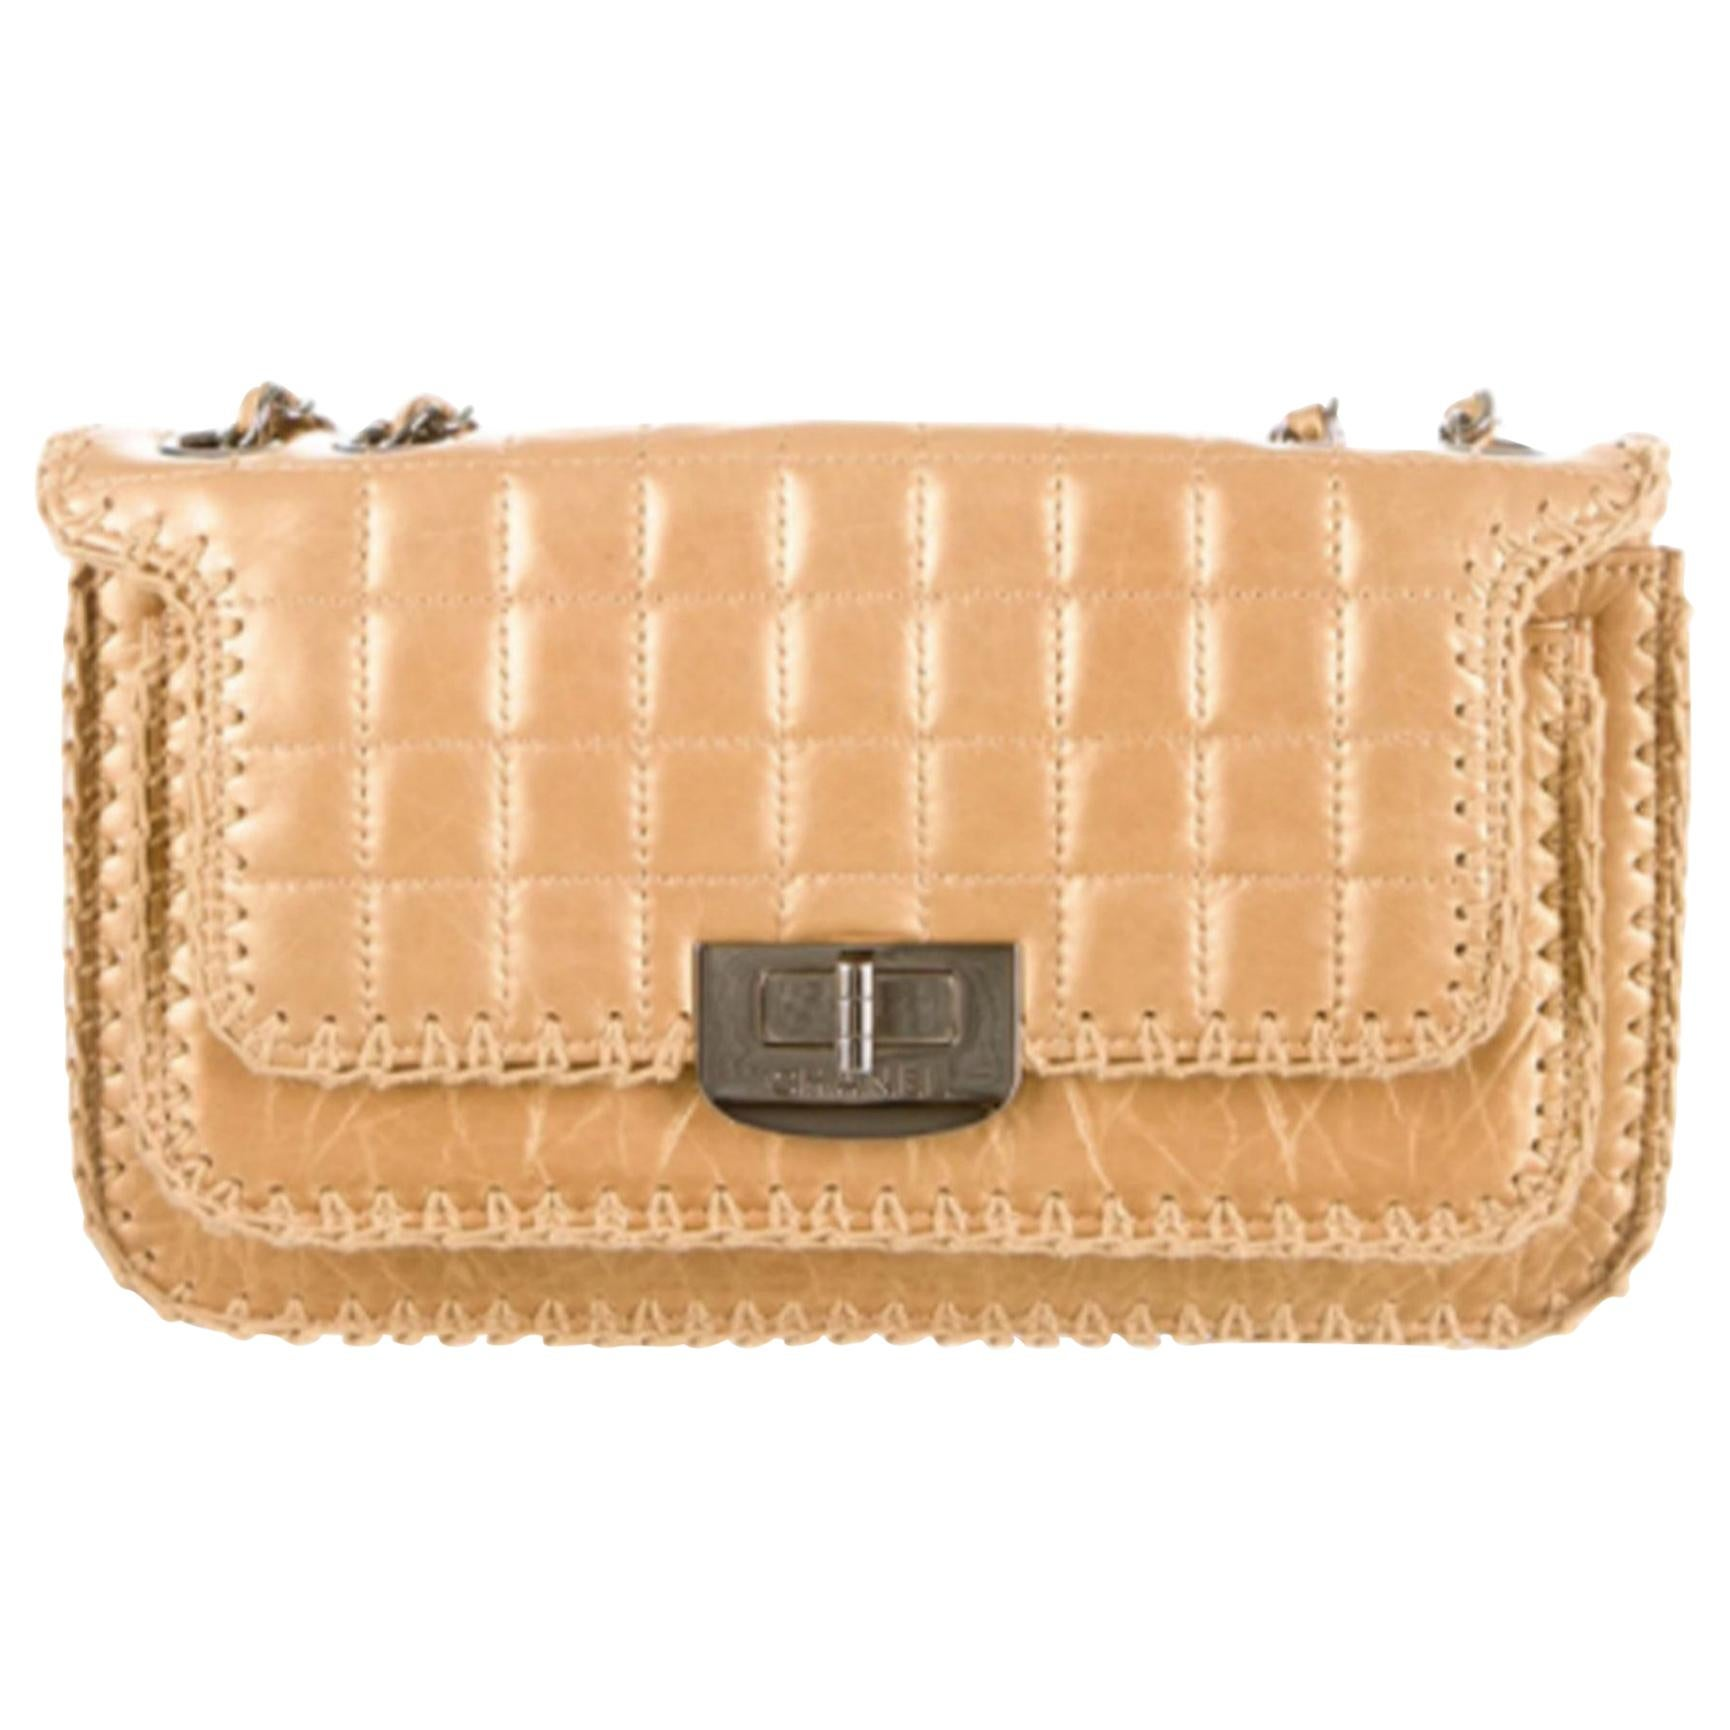 Chanel Small Gold Reissue Classic Small Medium Flap Bag